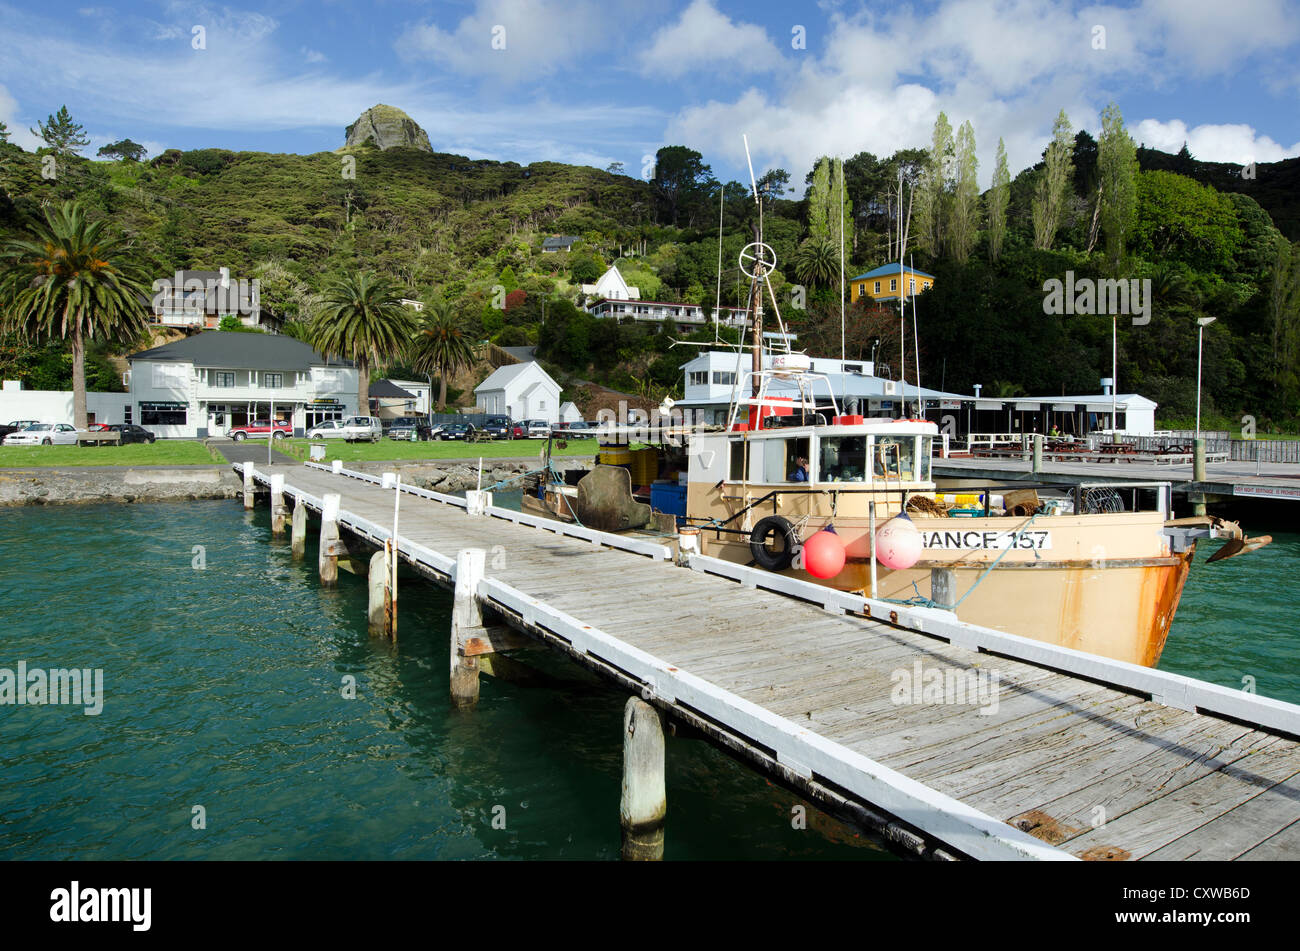 Landscape of an old fishing boat Whangaroa harbor during sunset in Northland, New Zealand. - Stock Image